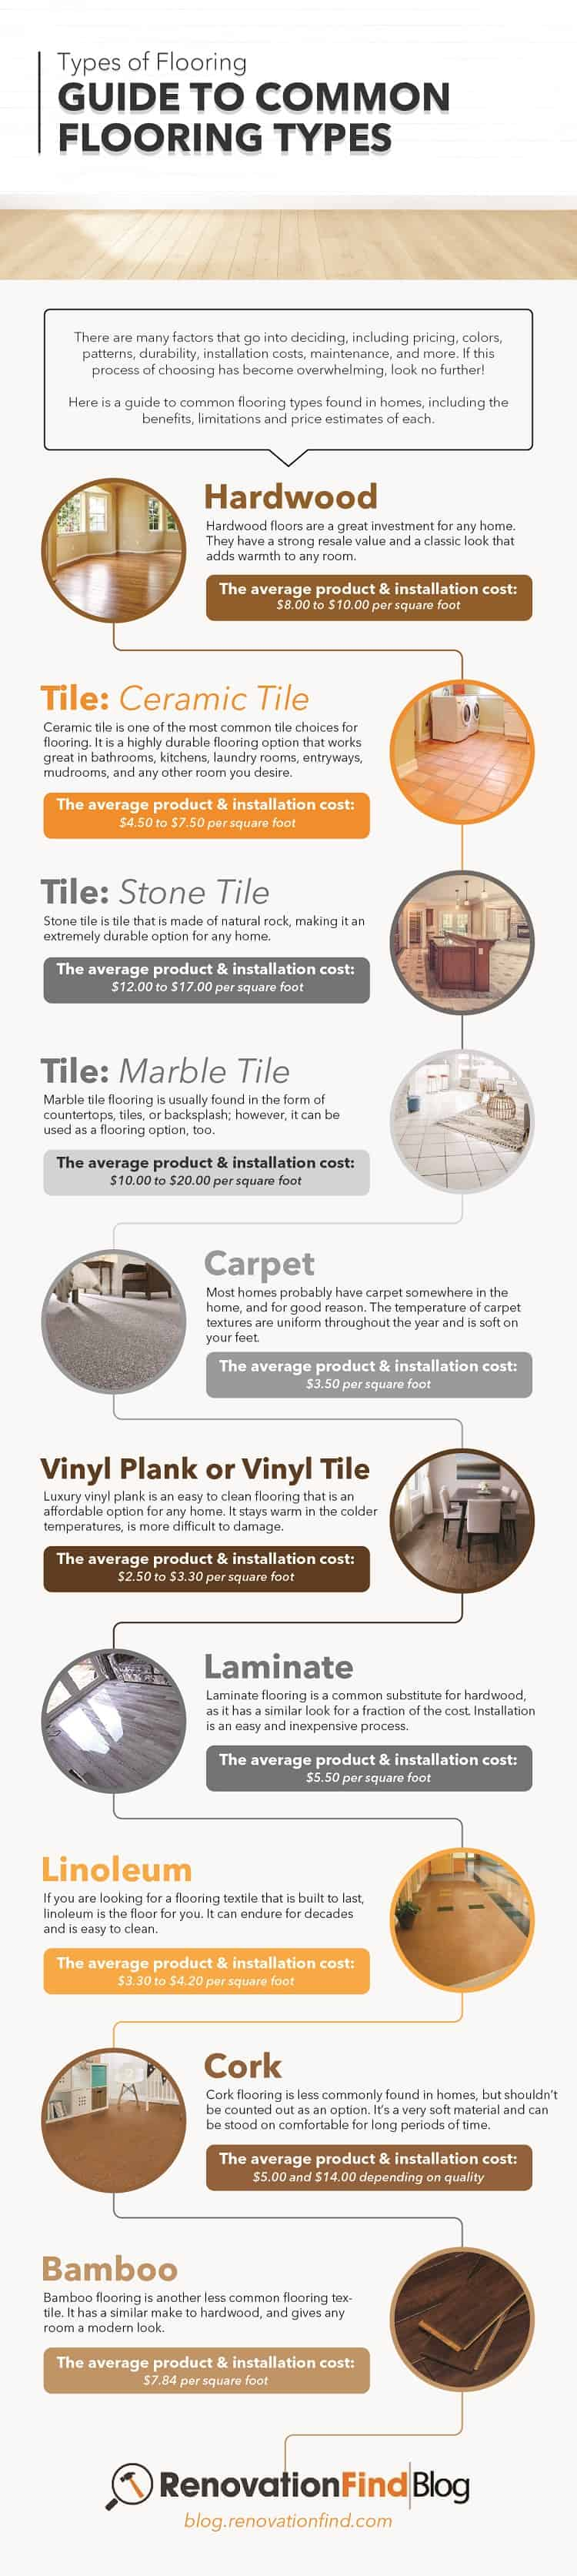 Types of Flooring Guide to Common Flooring Types